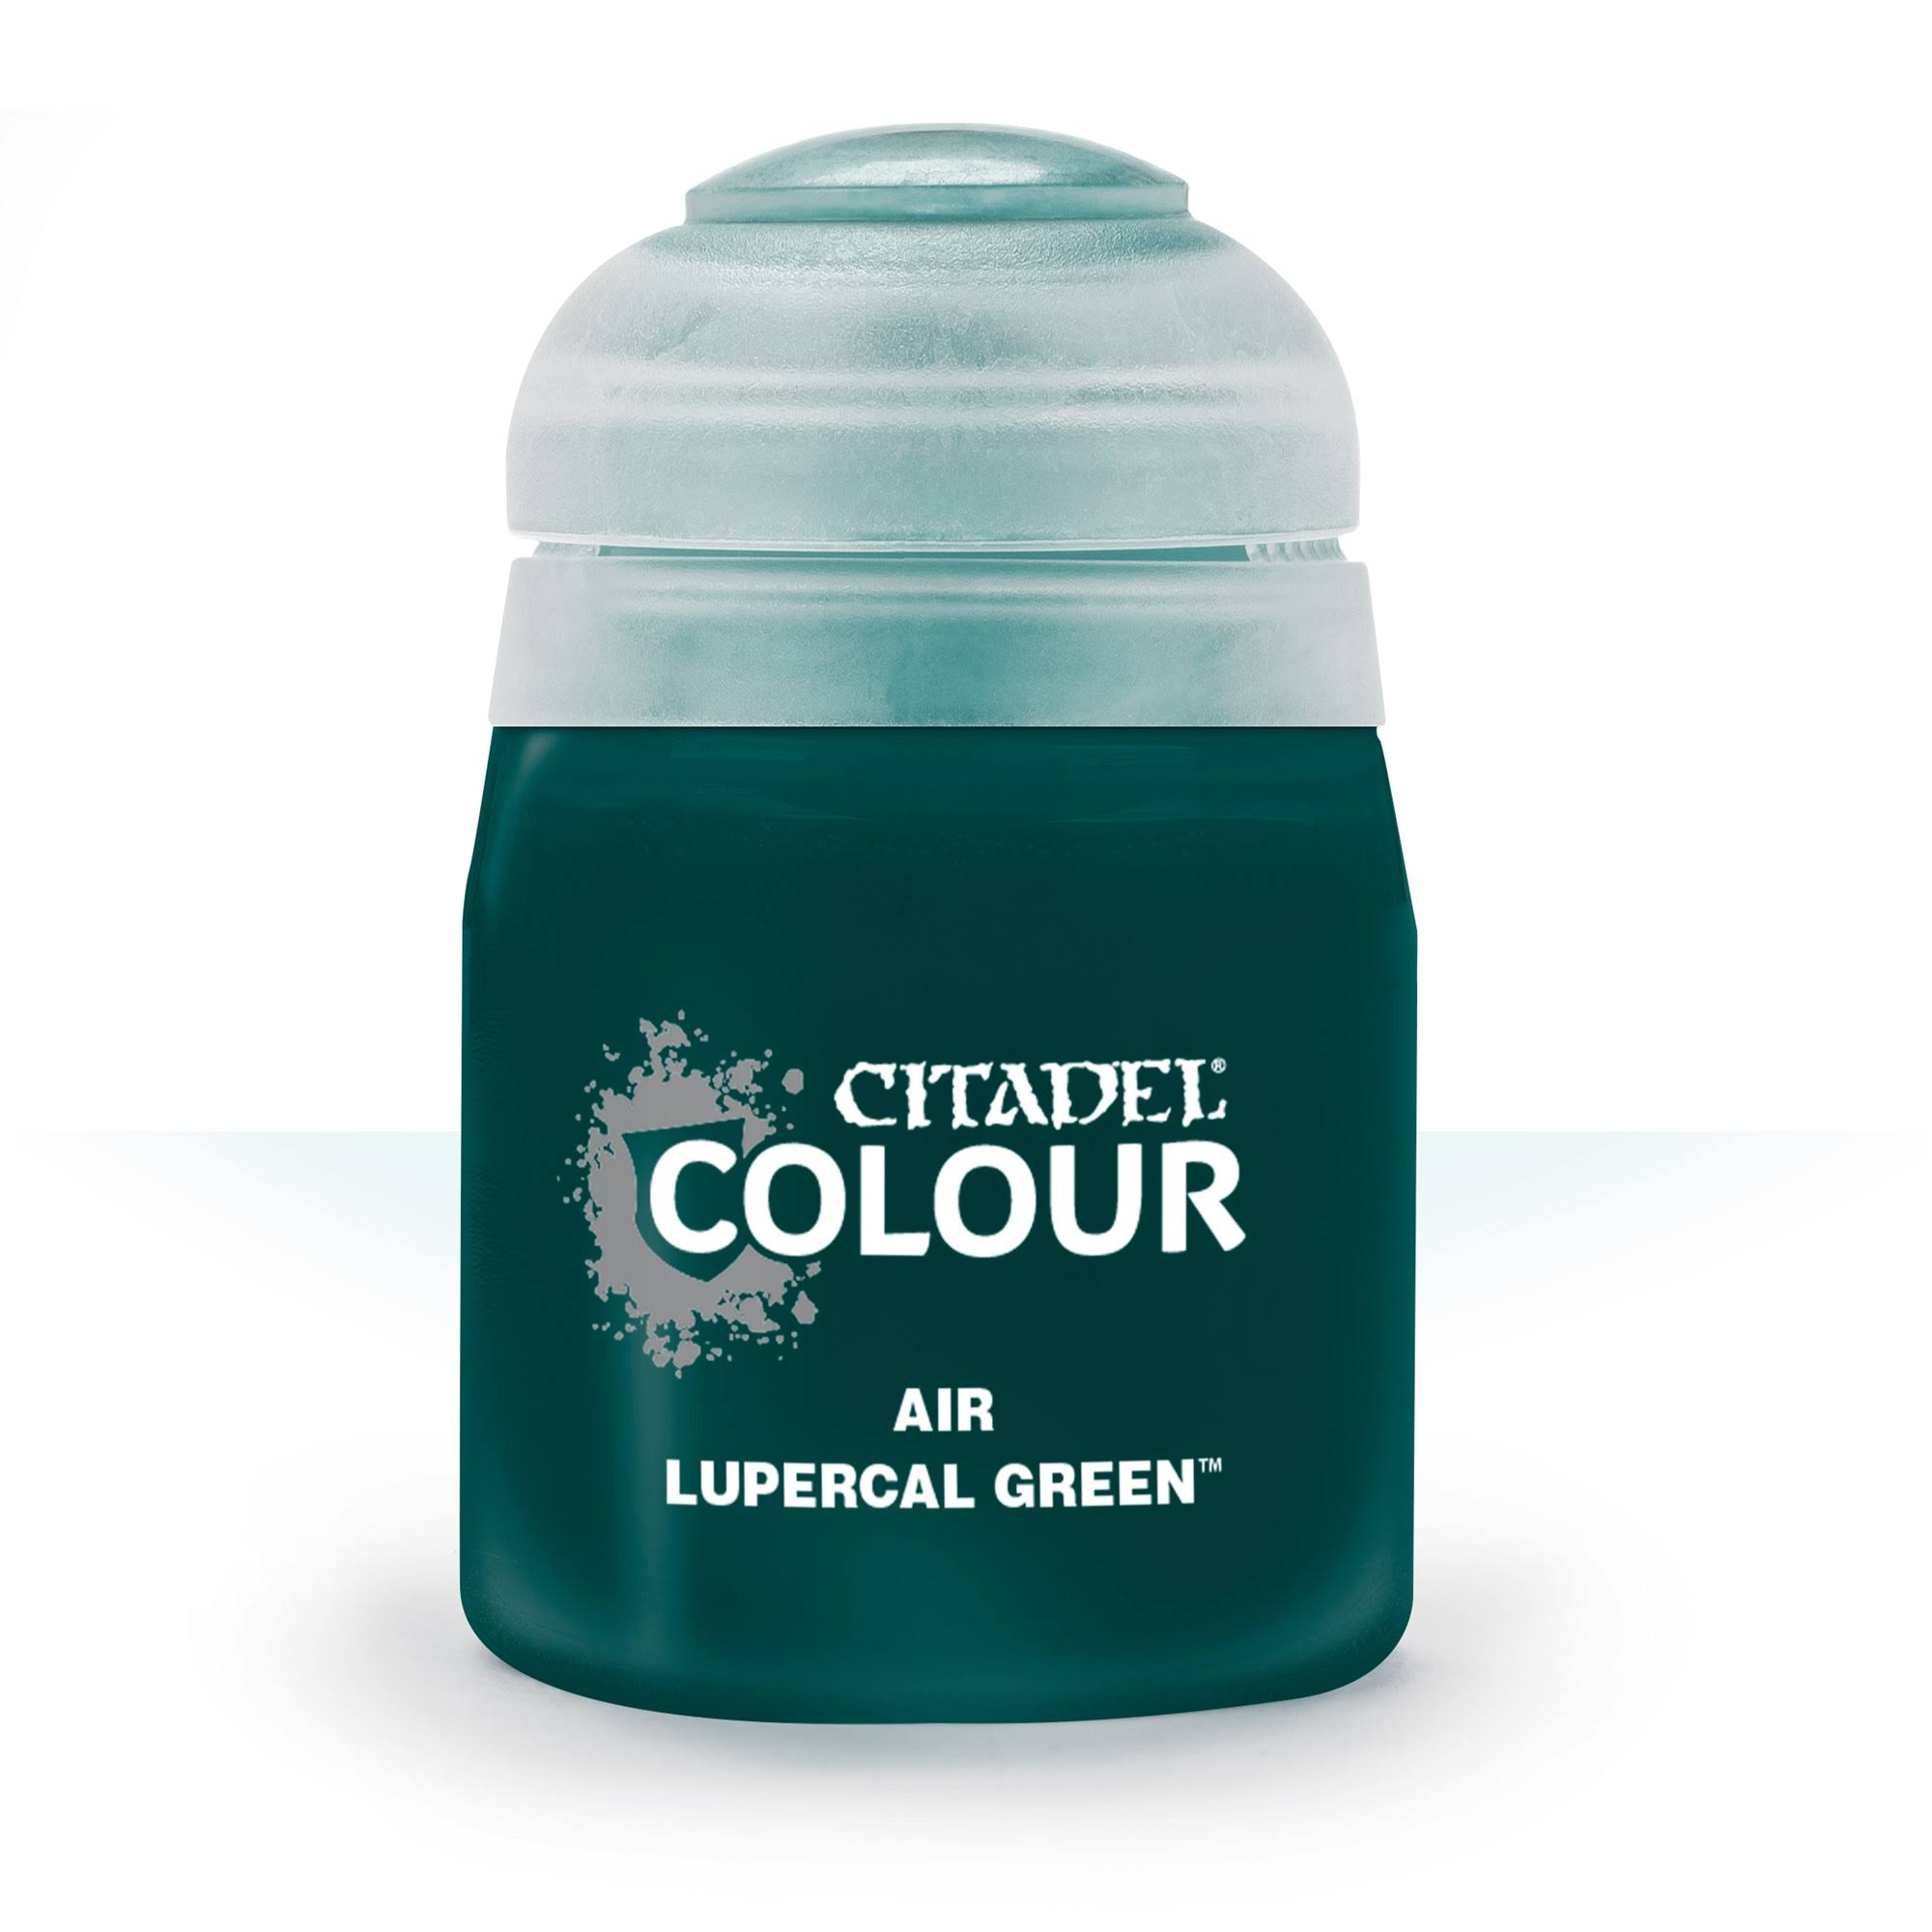 Citadel Air: Lupercal Green